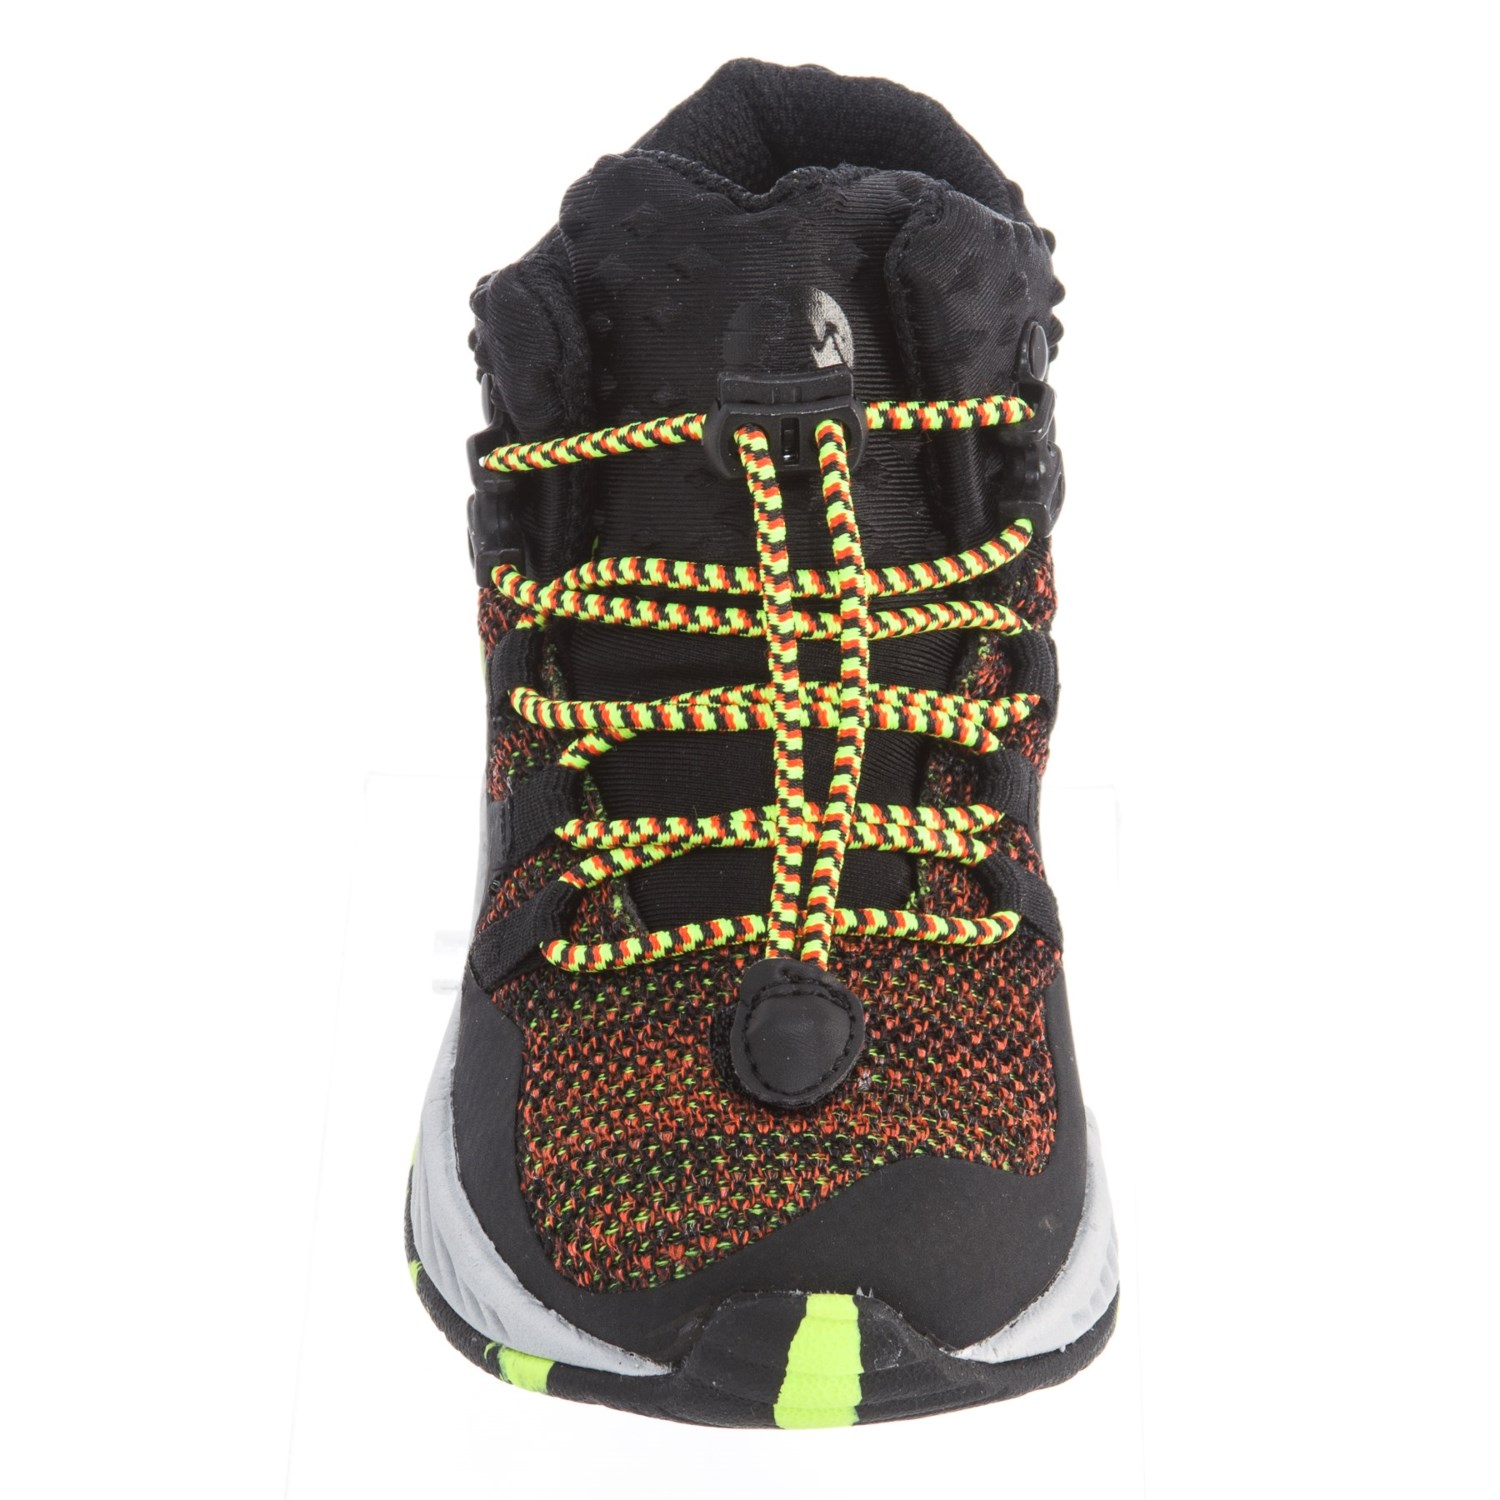 a5ac1655031 Jambu KD Armadillo Sneakers (For Boys) - Save 49%